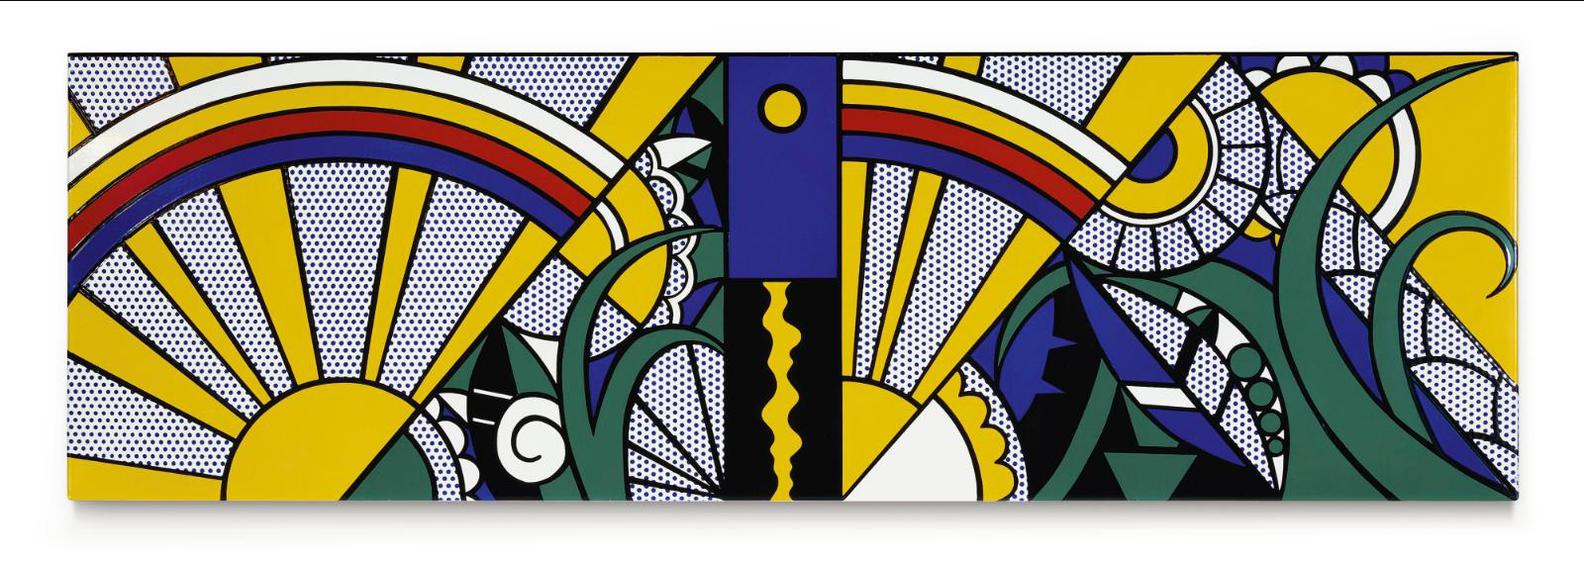 Roy Lichtenstein-Composition-1969